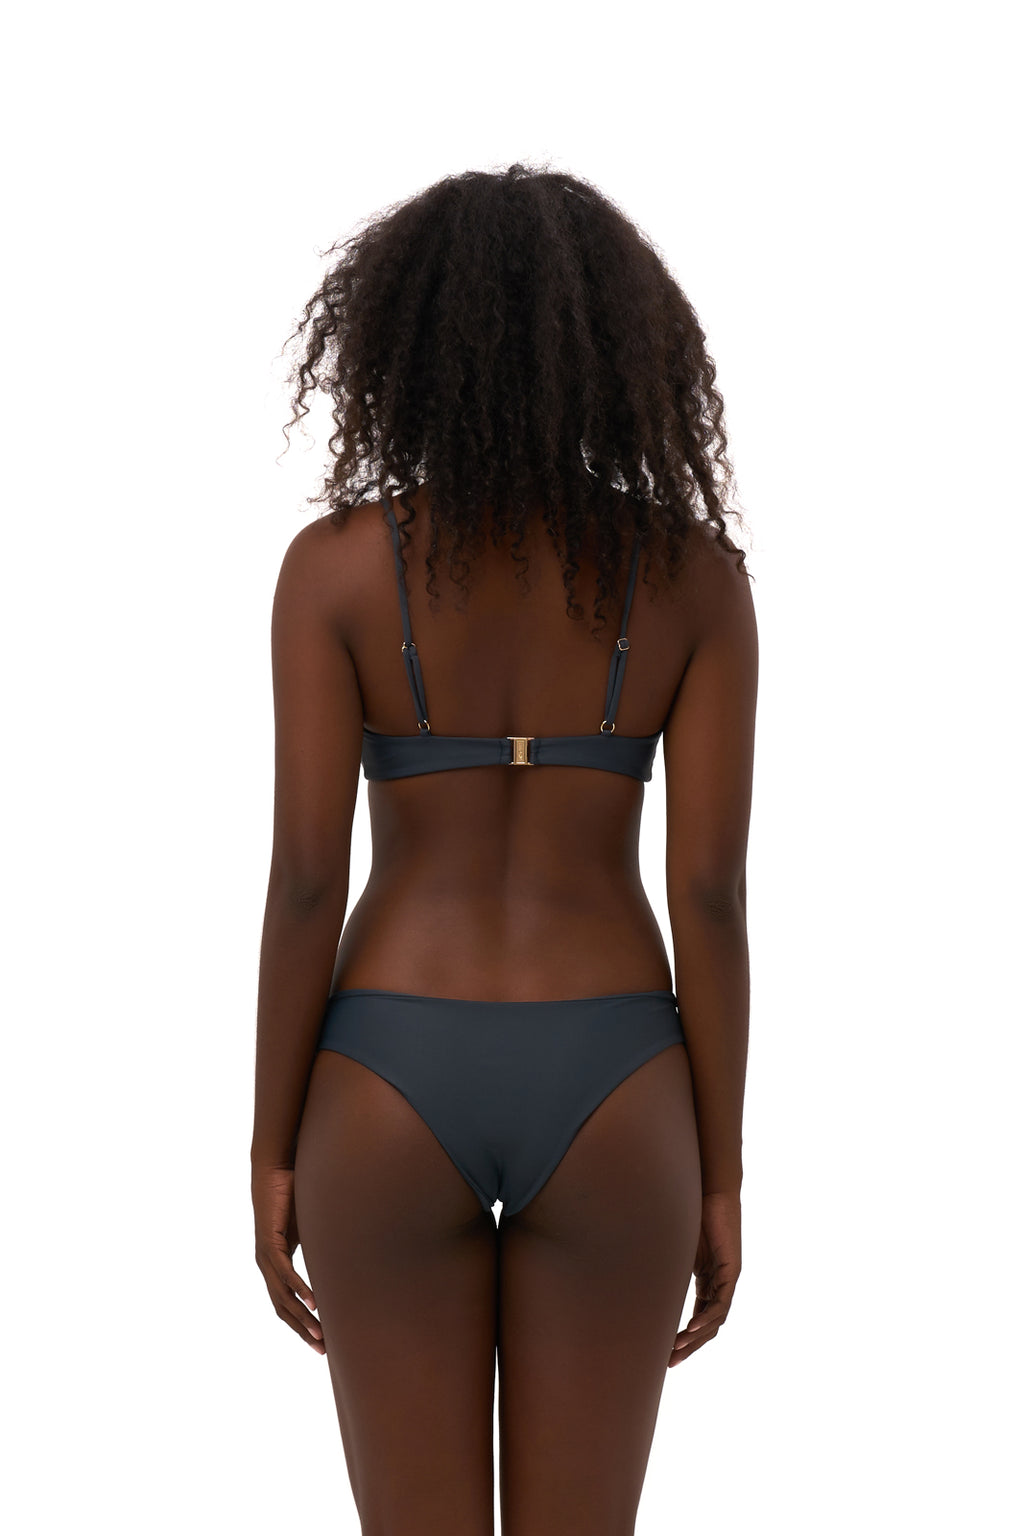 Storm Swimwear - St Barts - Bottom in Slate Grey